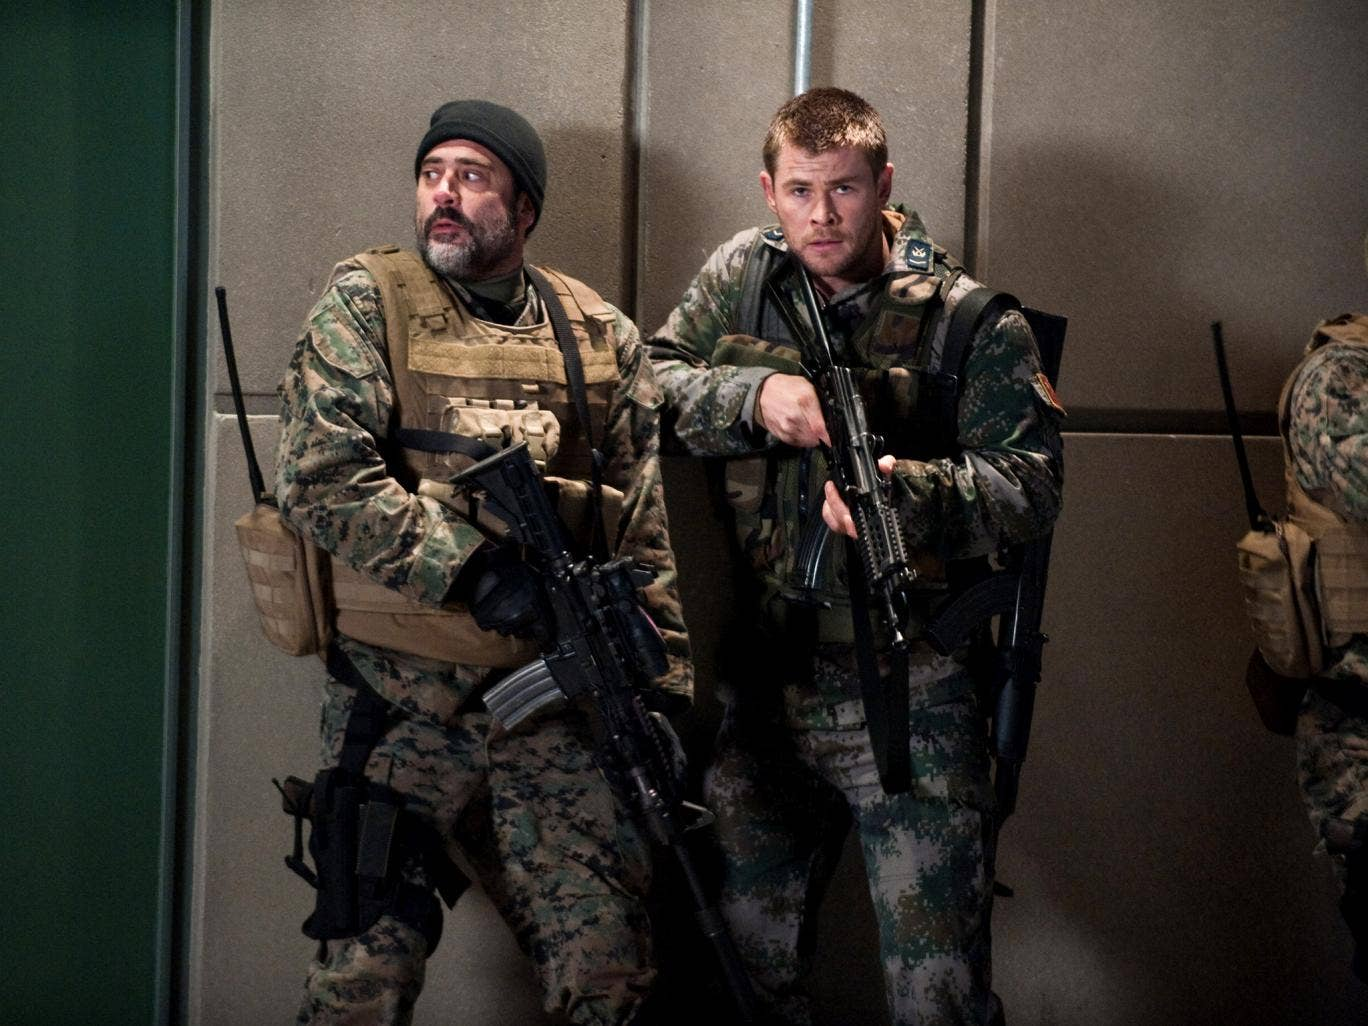 This film image released by Film District shows Jeffrey Dean Morgan, left, and Chris Hemsworth